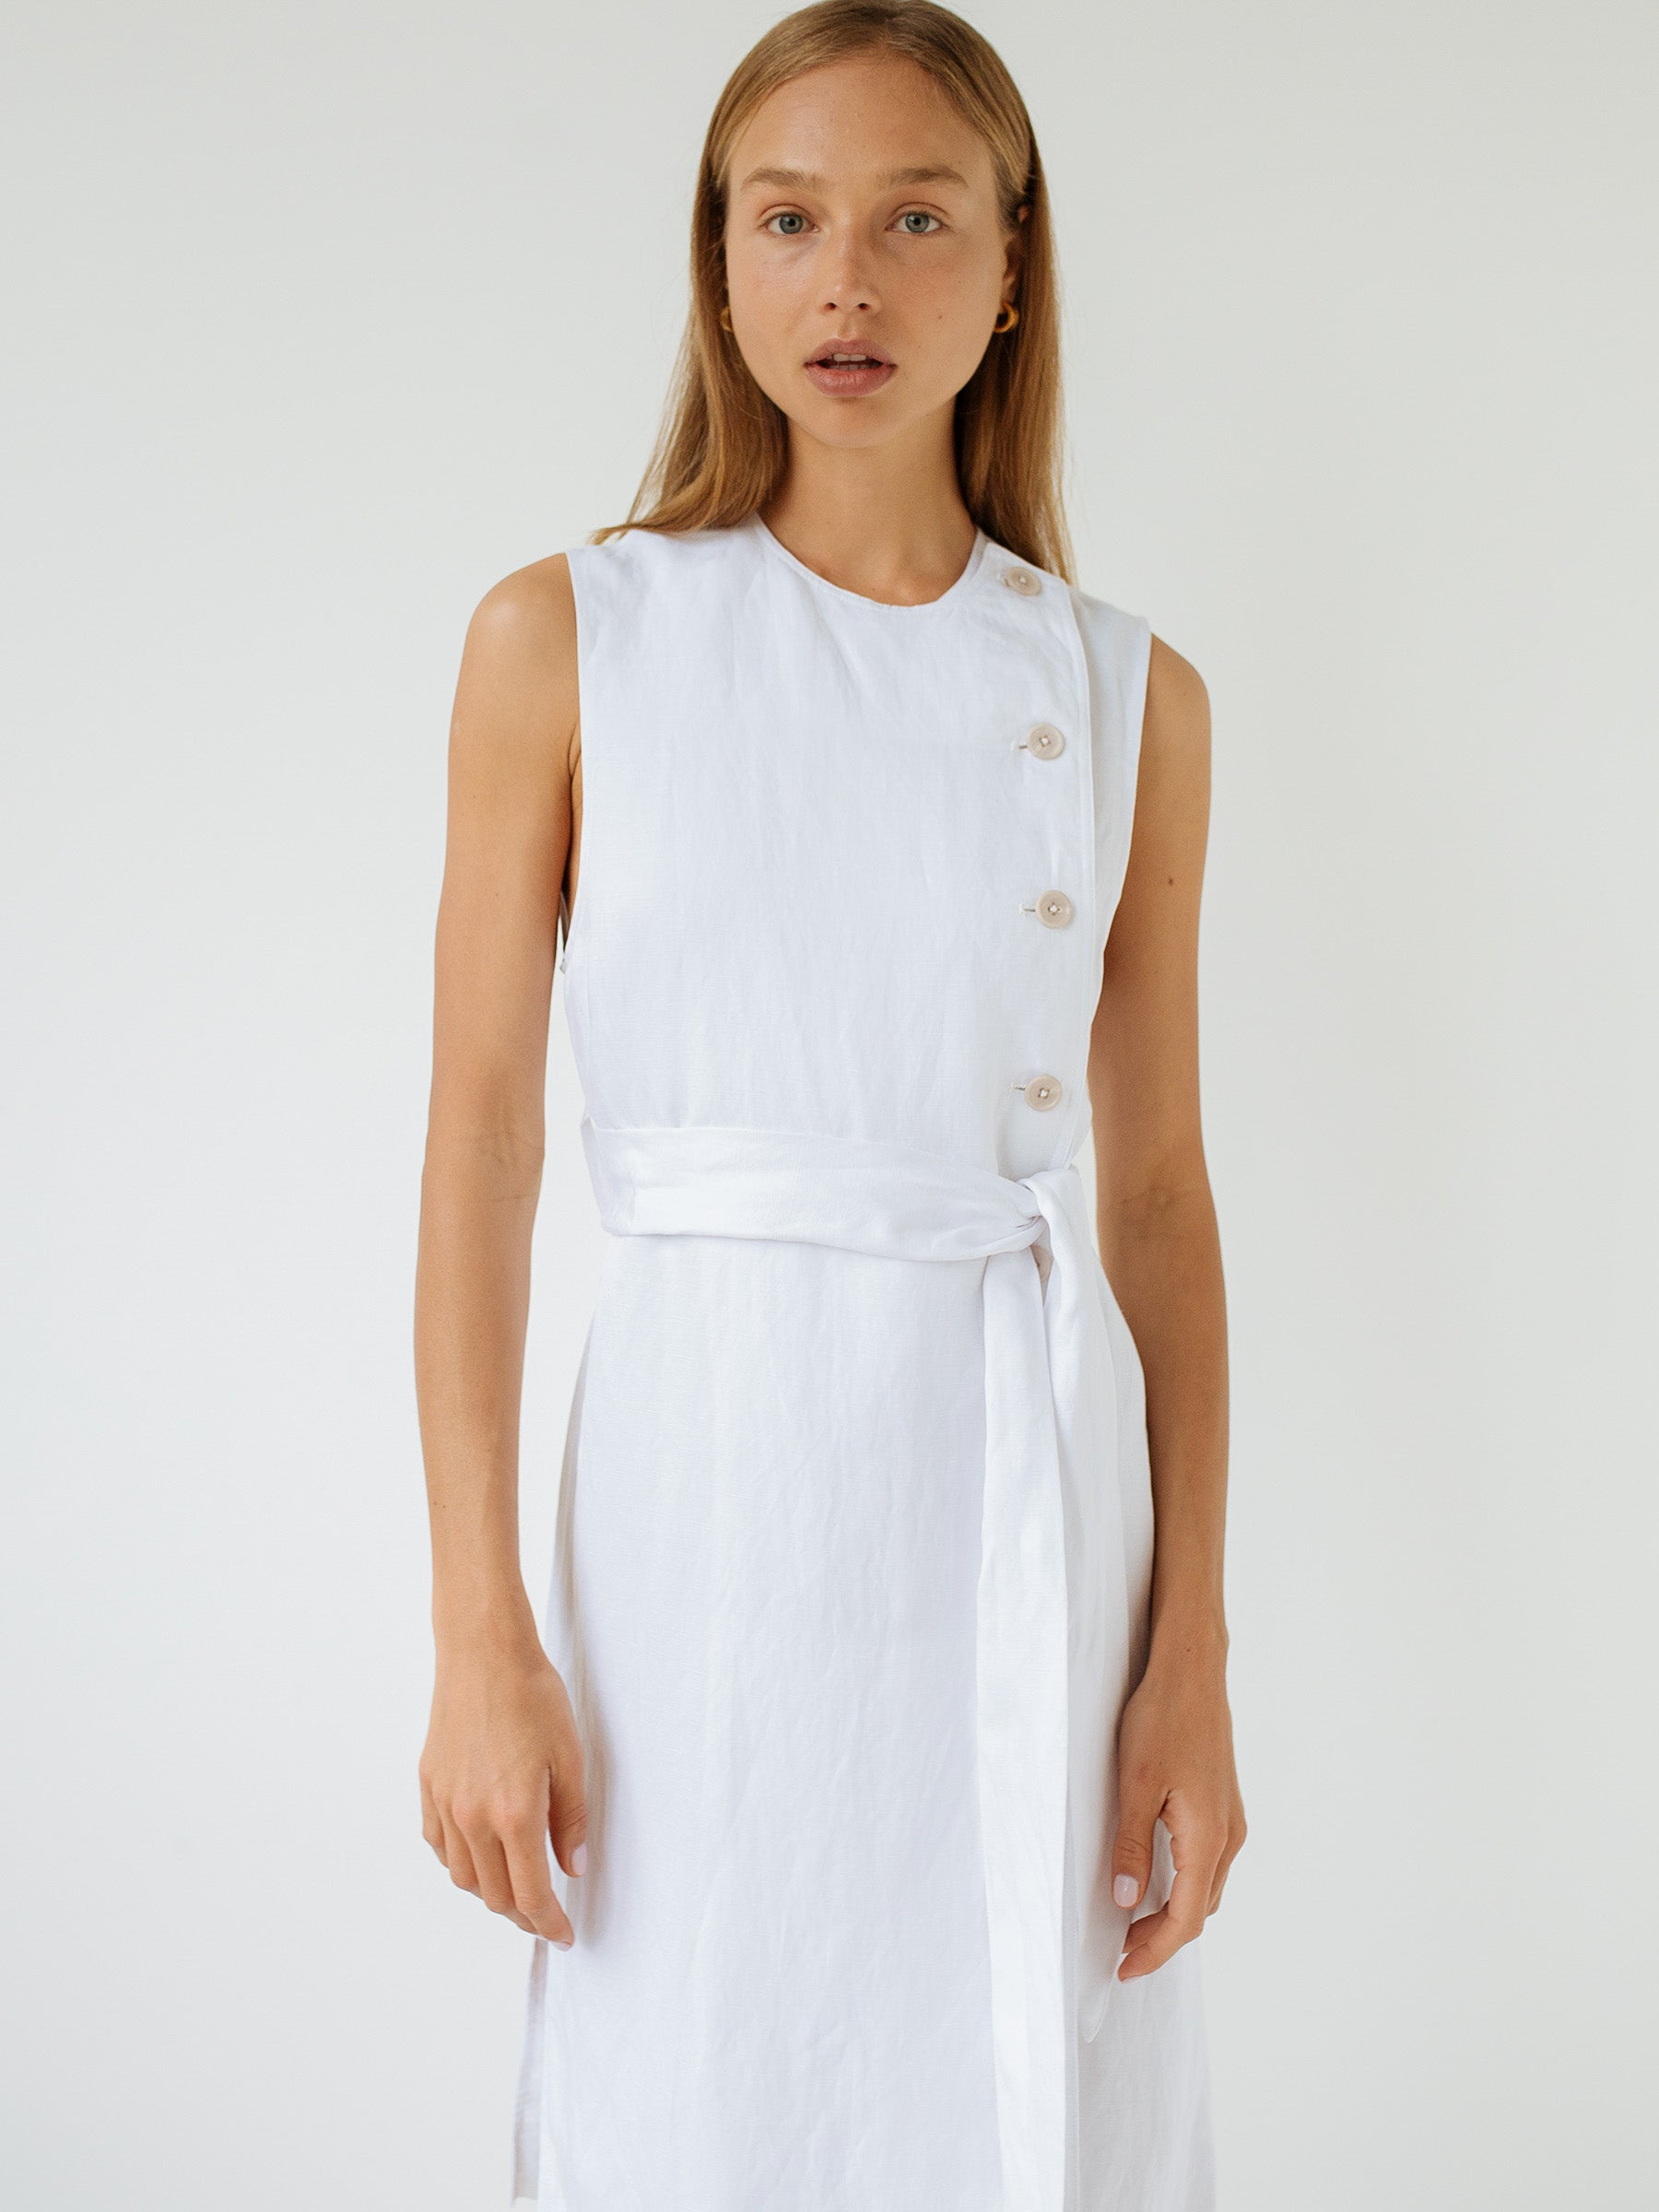 sir the label contemporary women s fashion brand online at the